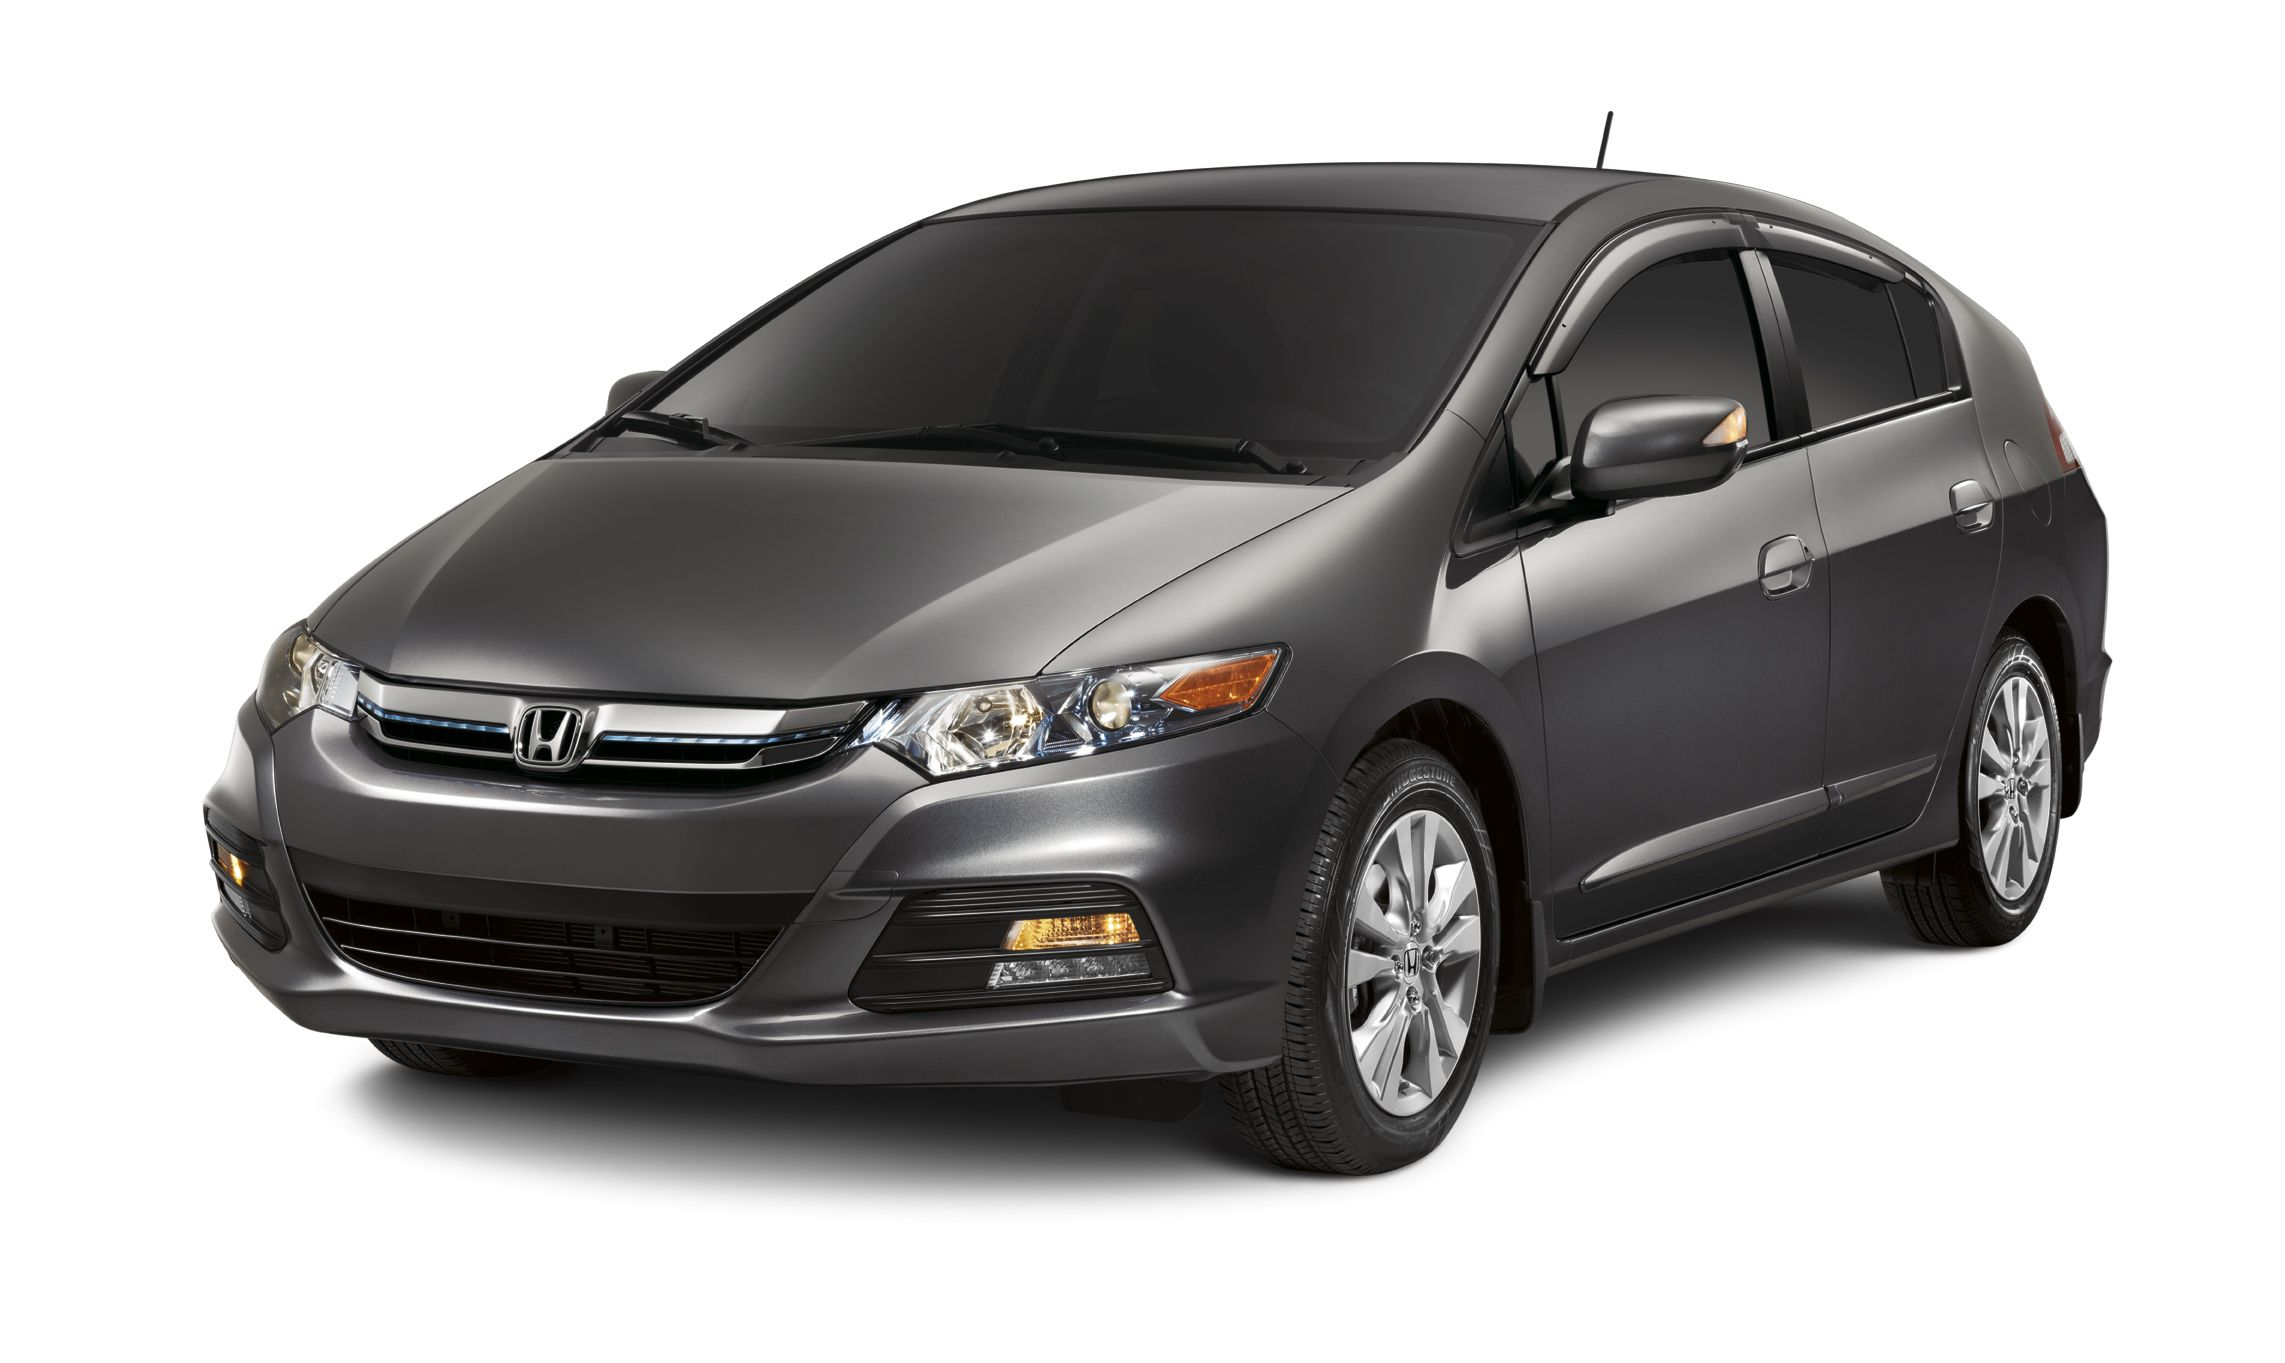 2013 Honda Insight Accessories